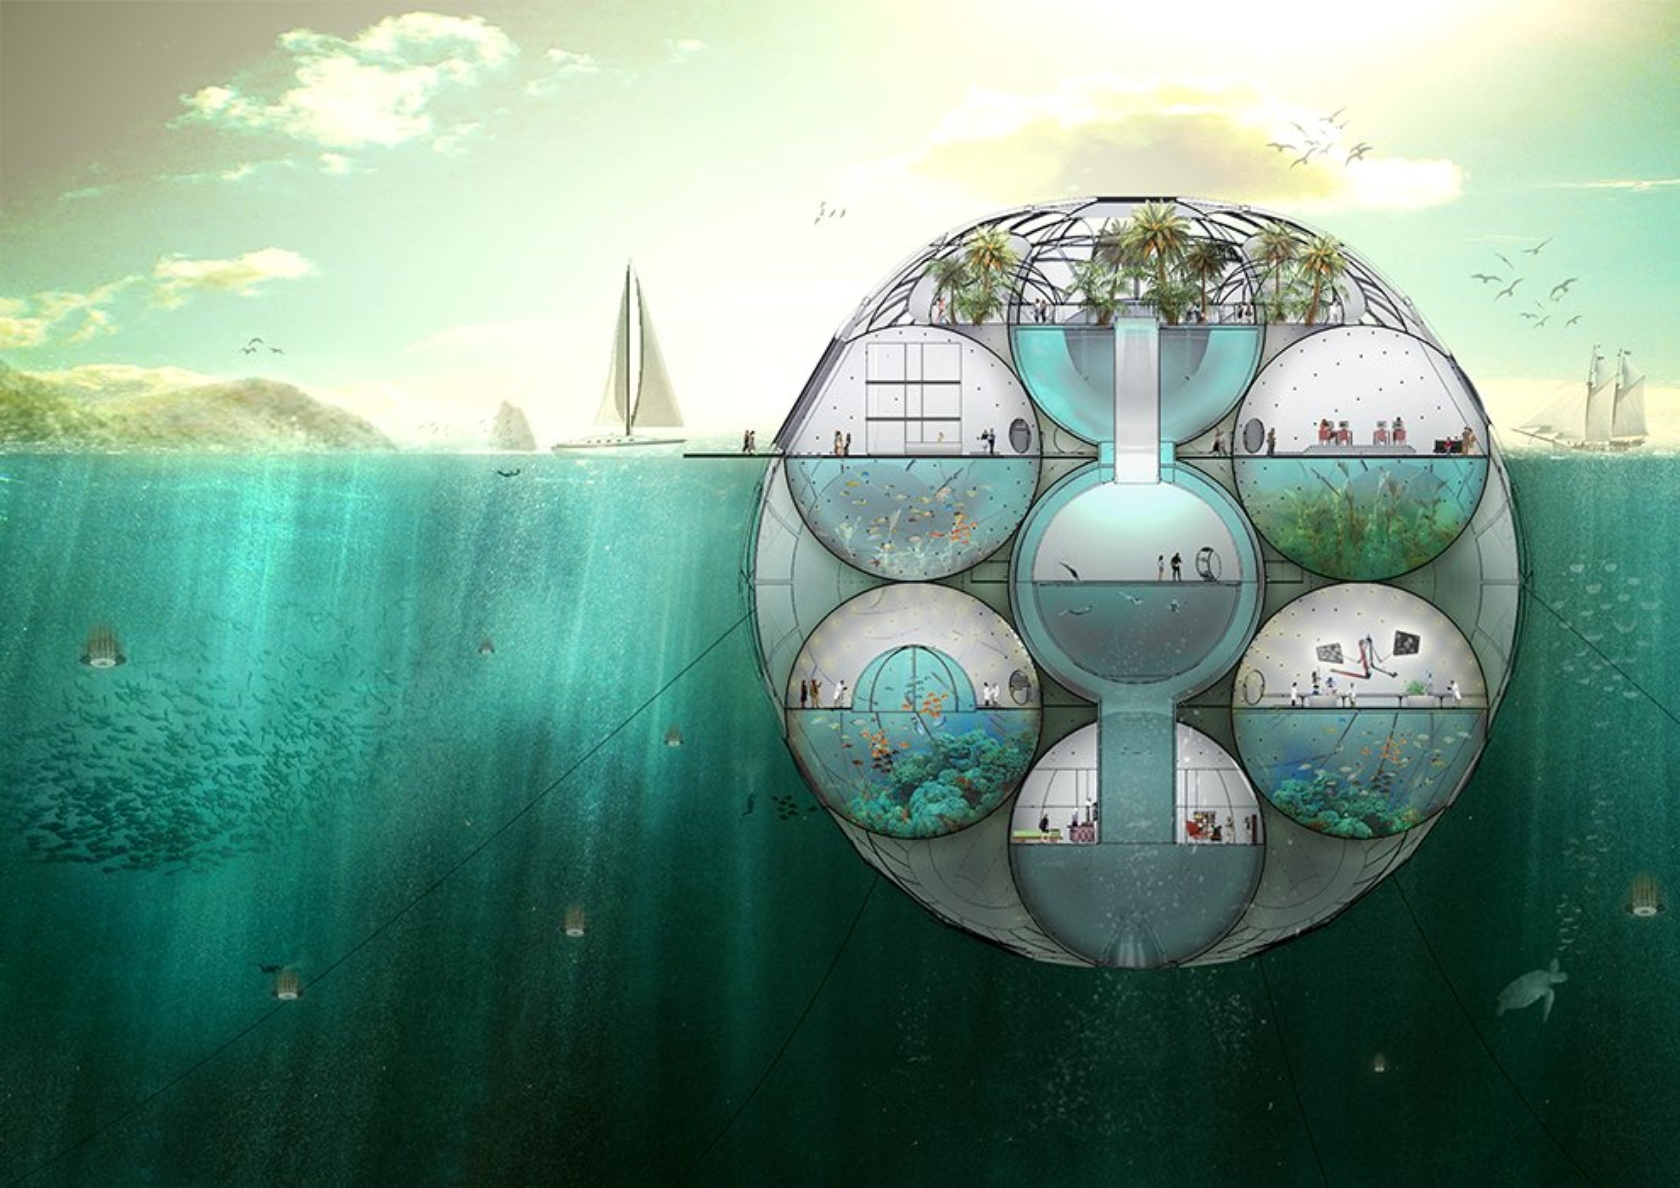 is this floating spherical home a glimpse of the future? - okeanos